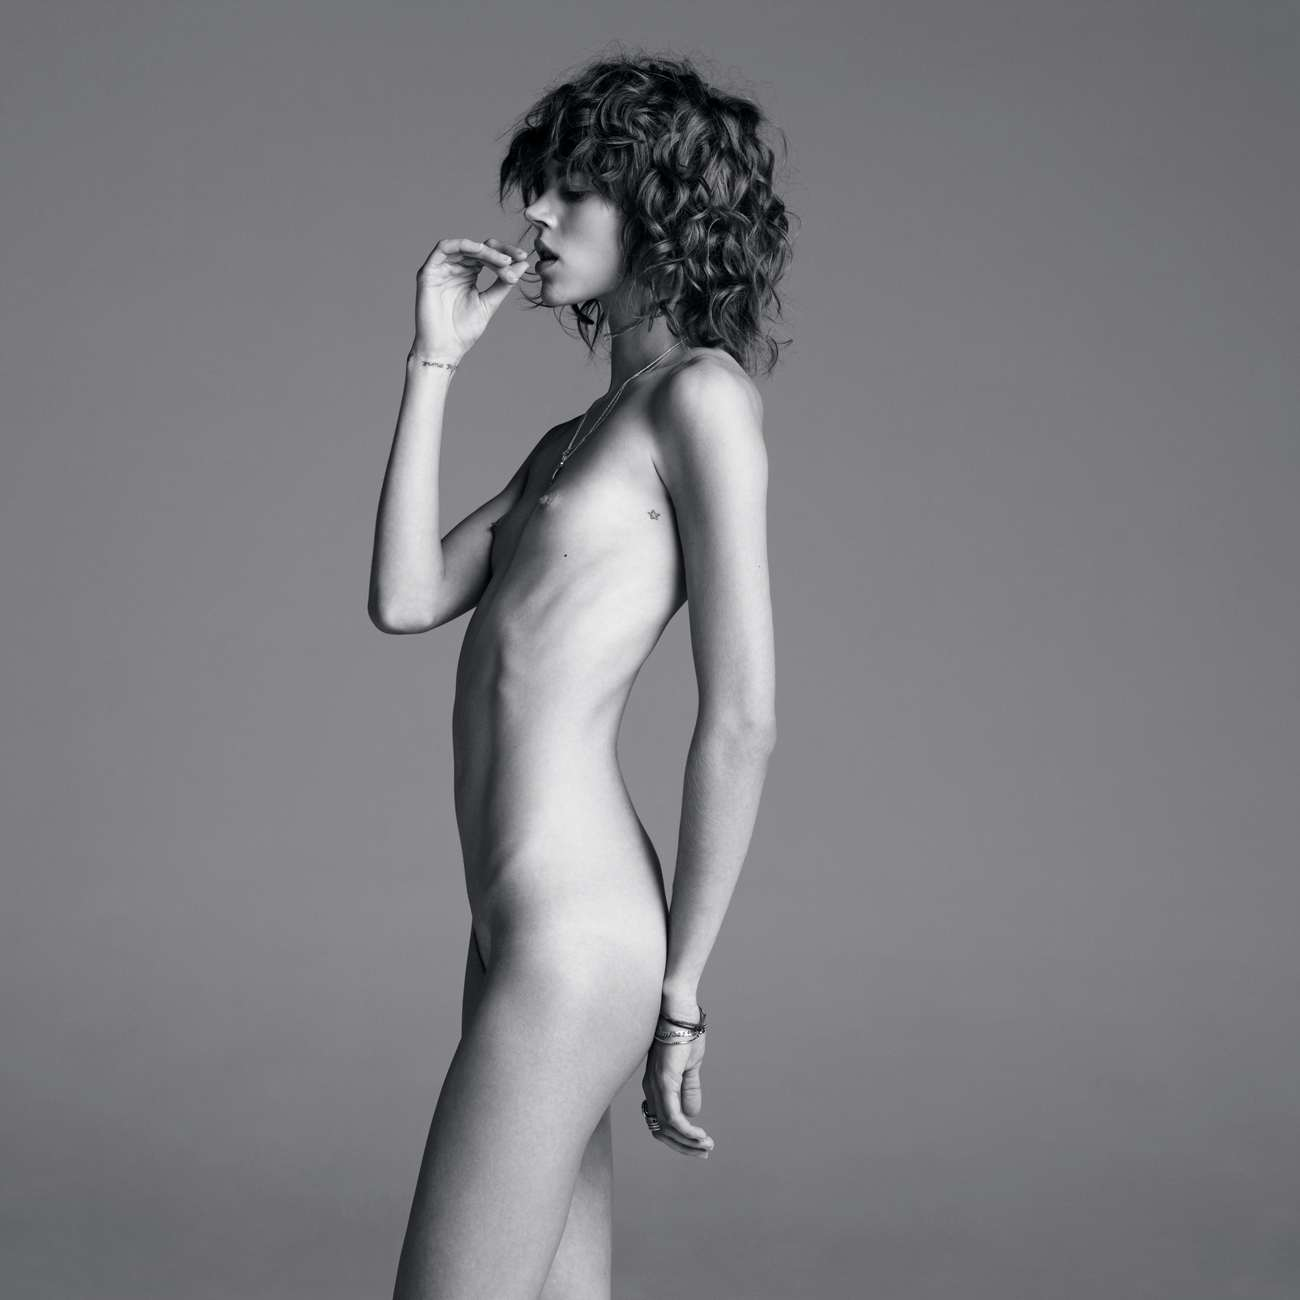 Freja beha erichsen nude authoritative